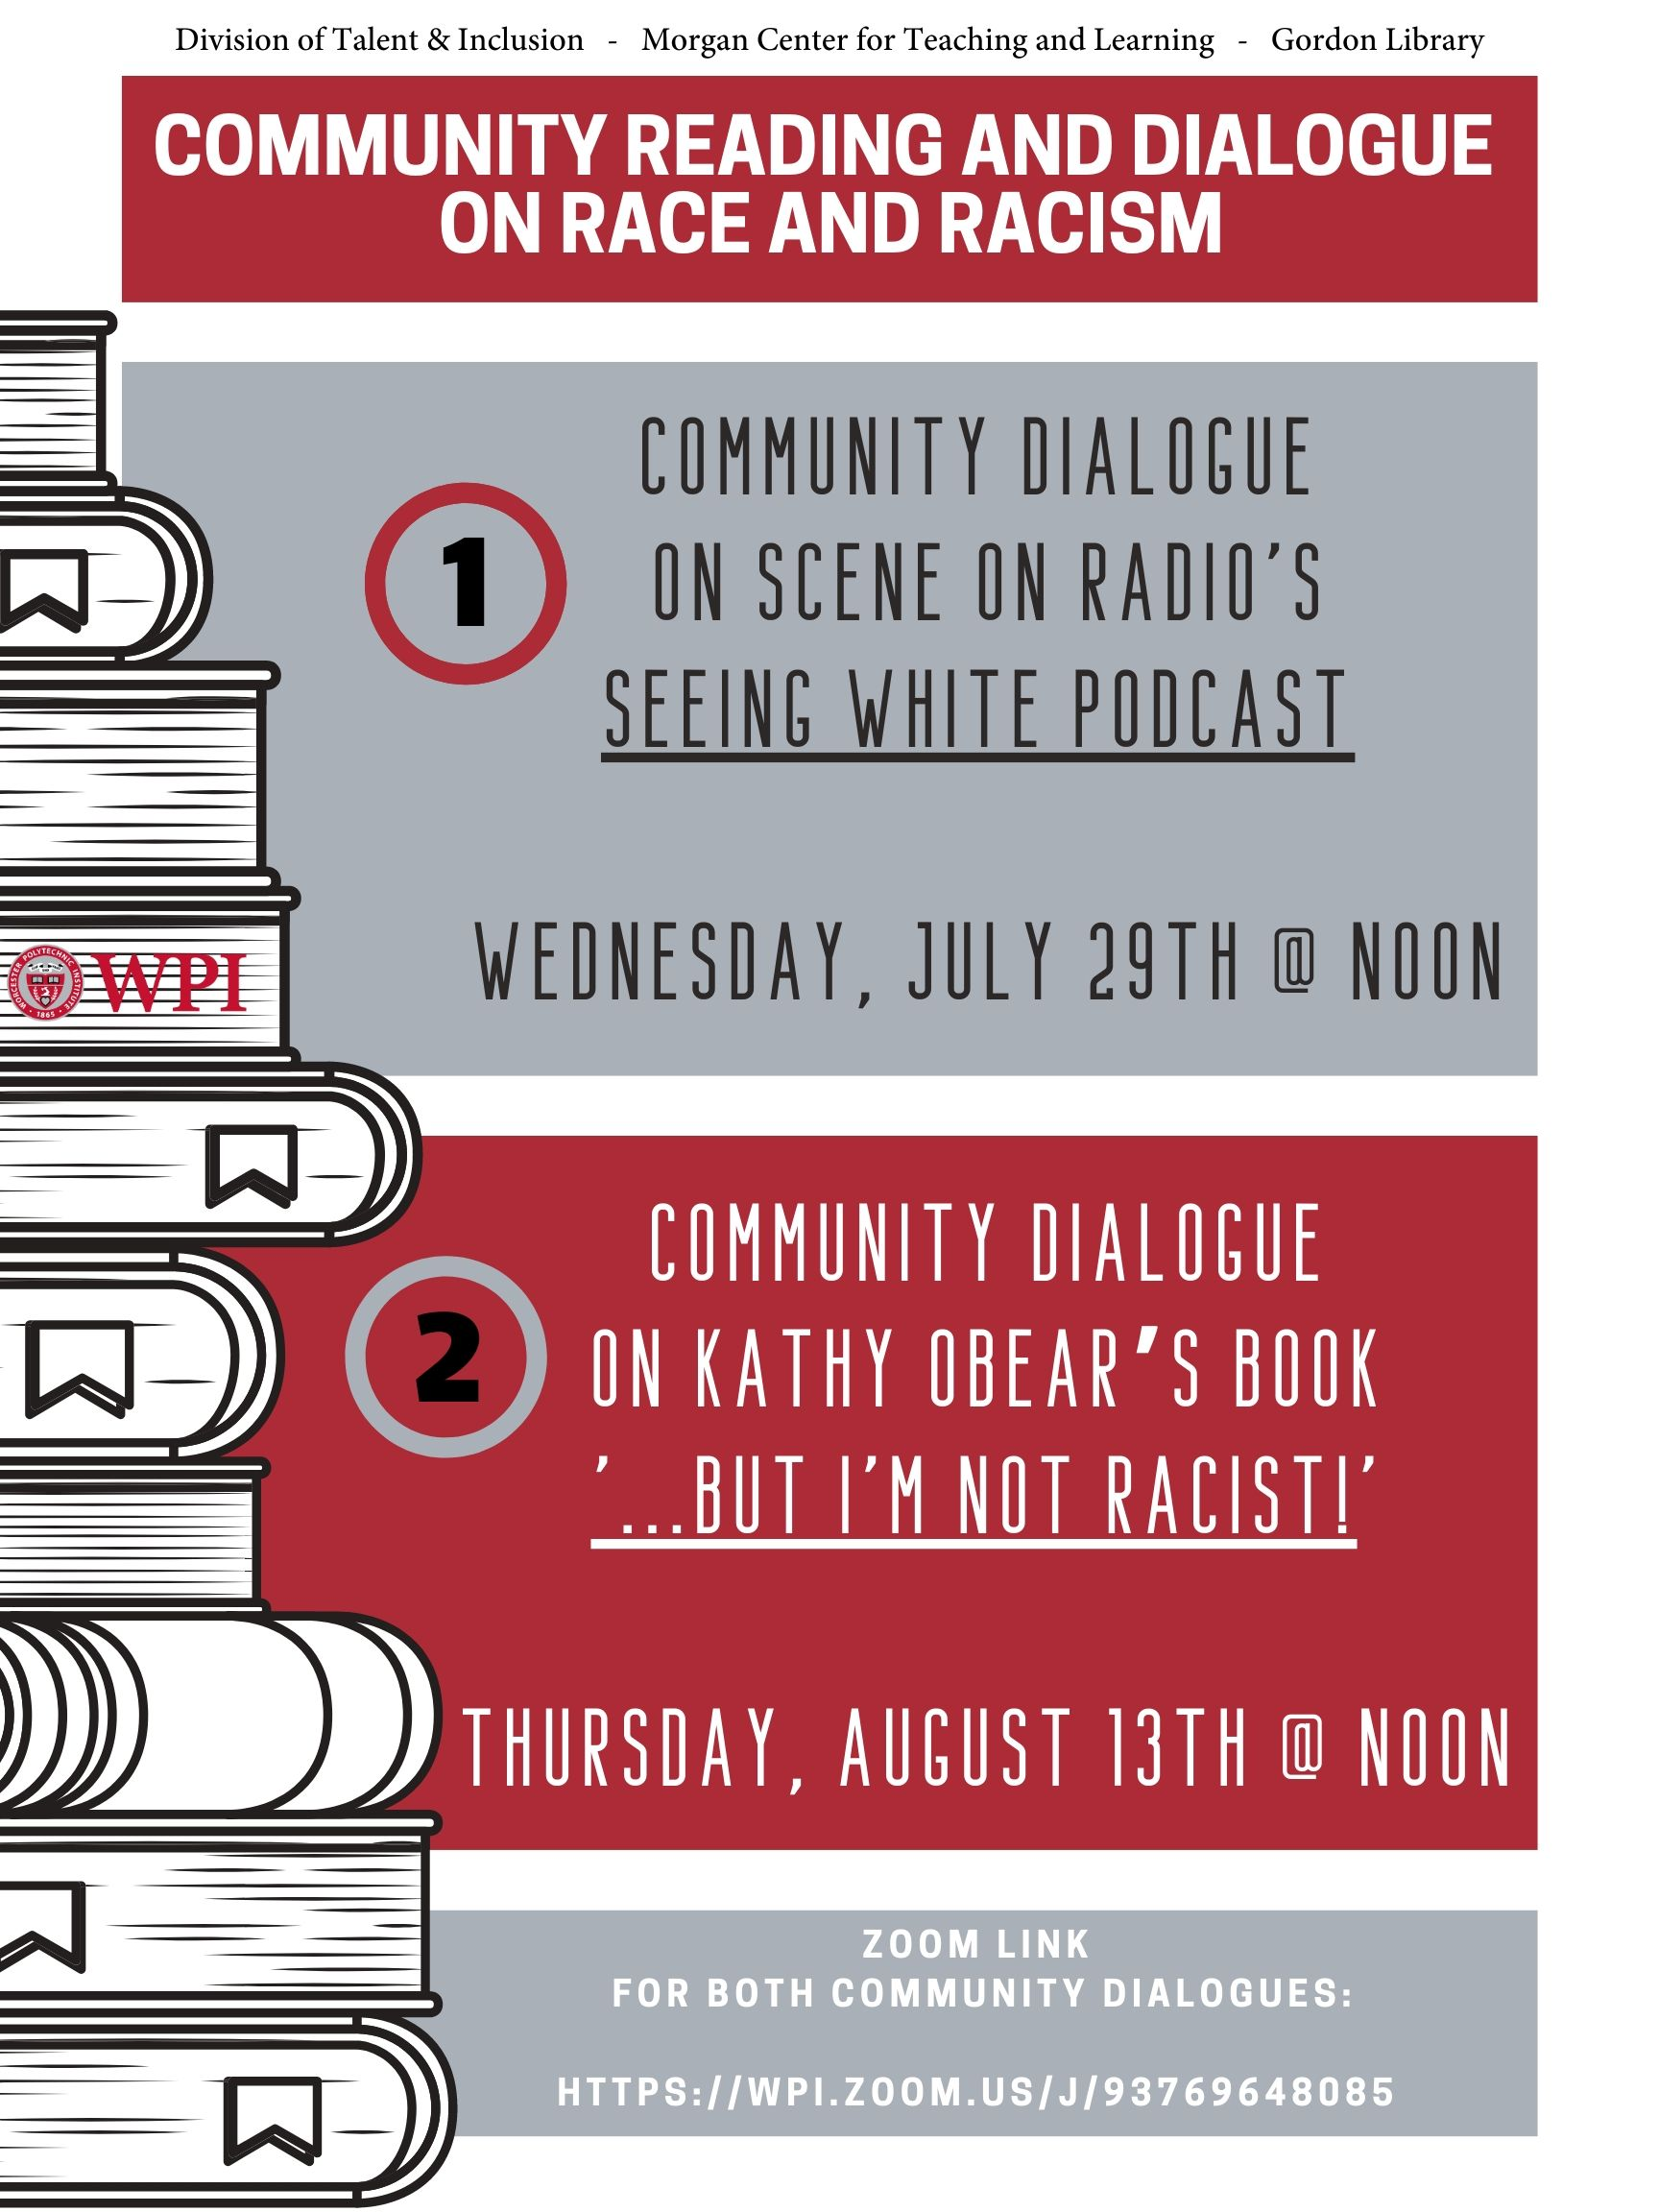 Community Reading & Dialogue on Race